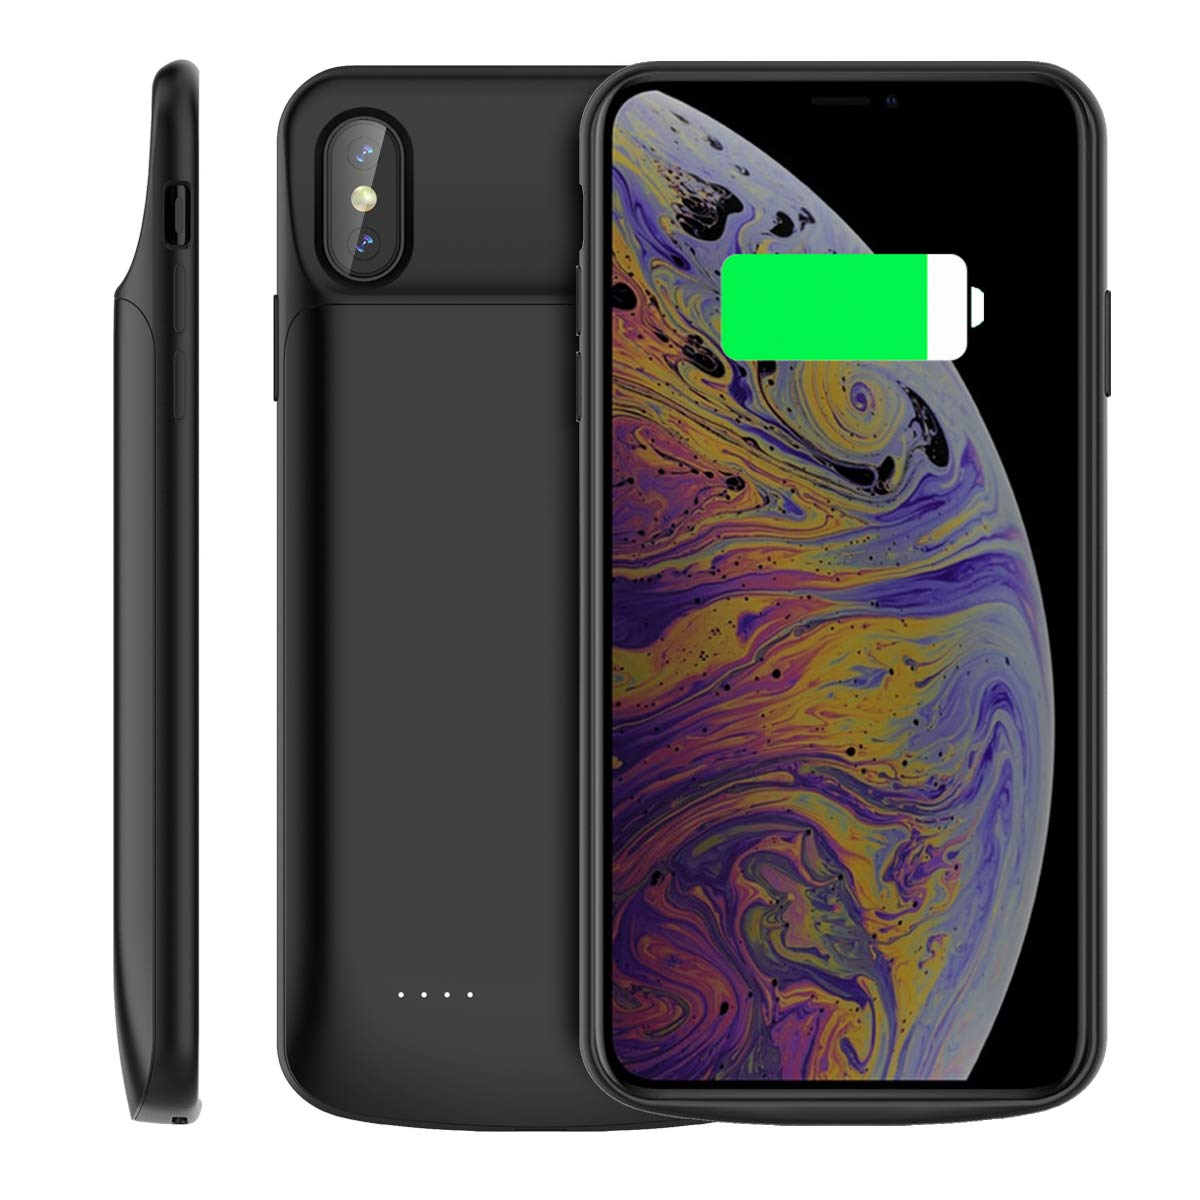 iPhone Xs Max Battery Case, 6000mAh Extended Battery Rechargeable Backup Fast Charging Case, Impact Resistant Power Bank Juice Full Edge Protection for iPhone Xs Max 6.5'' 2018 (Black)